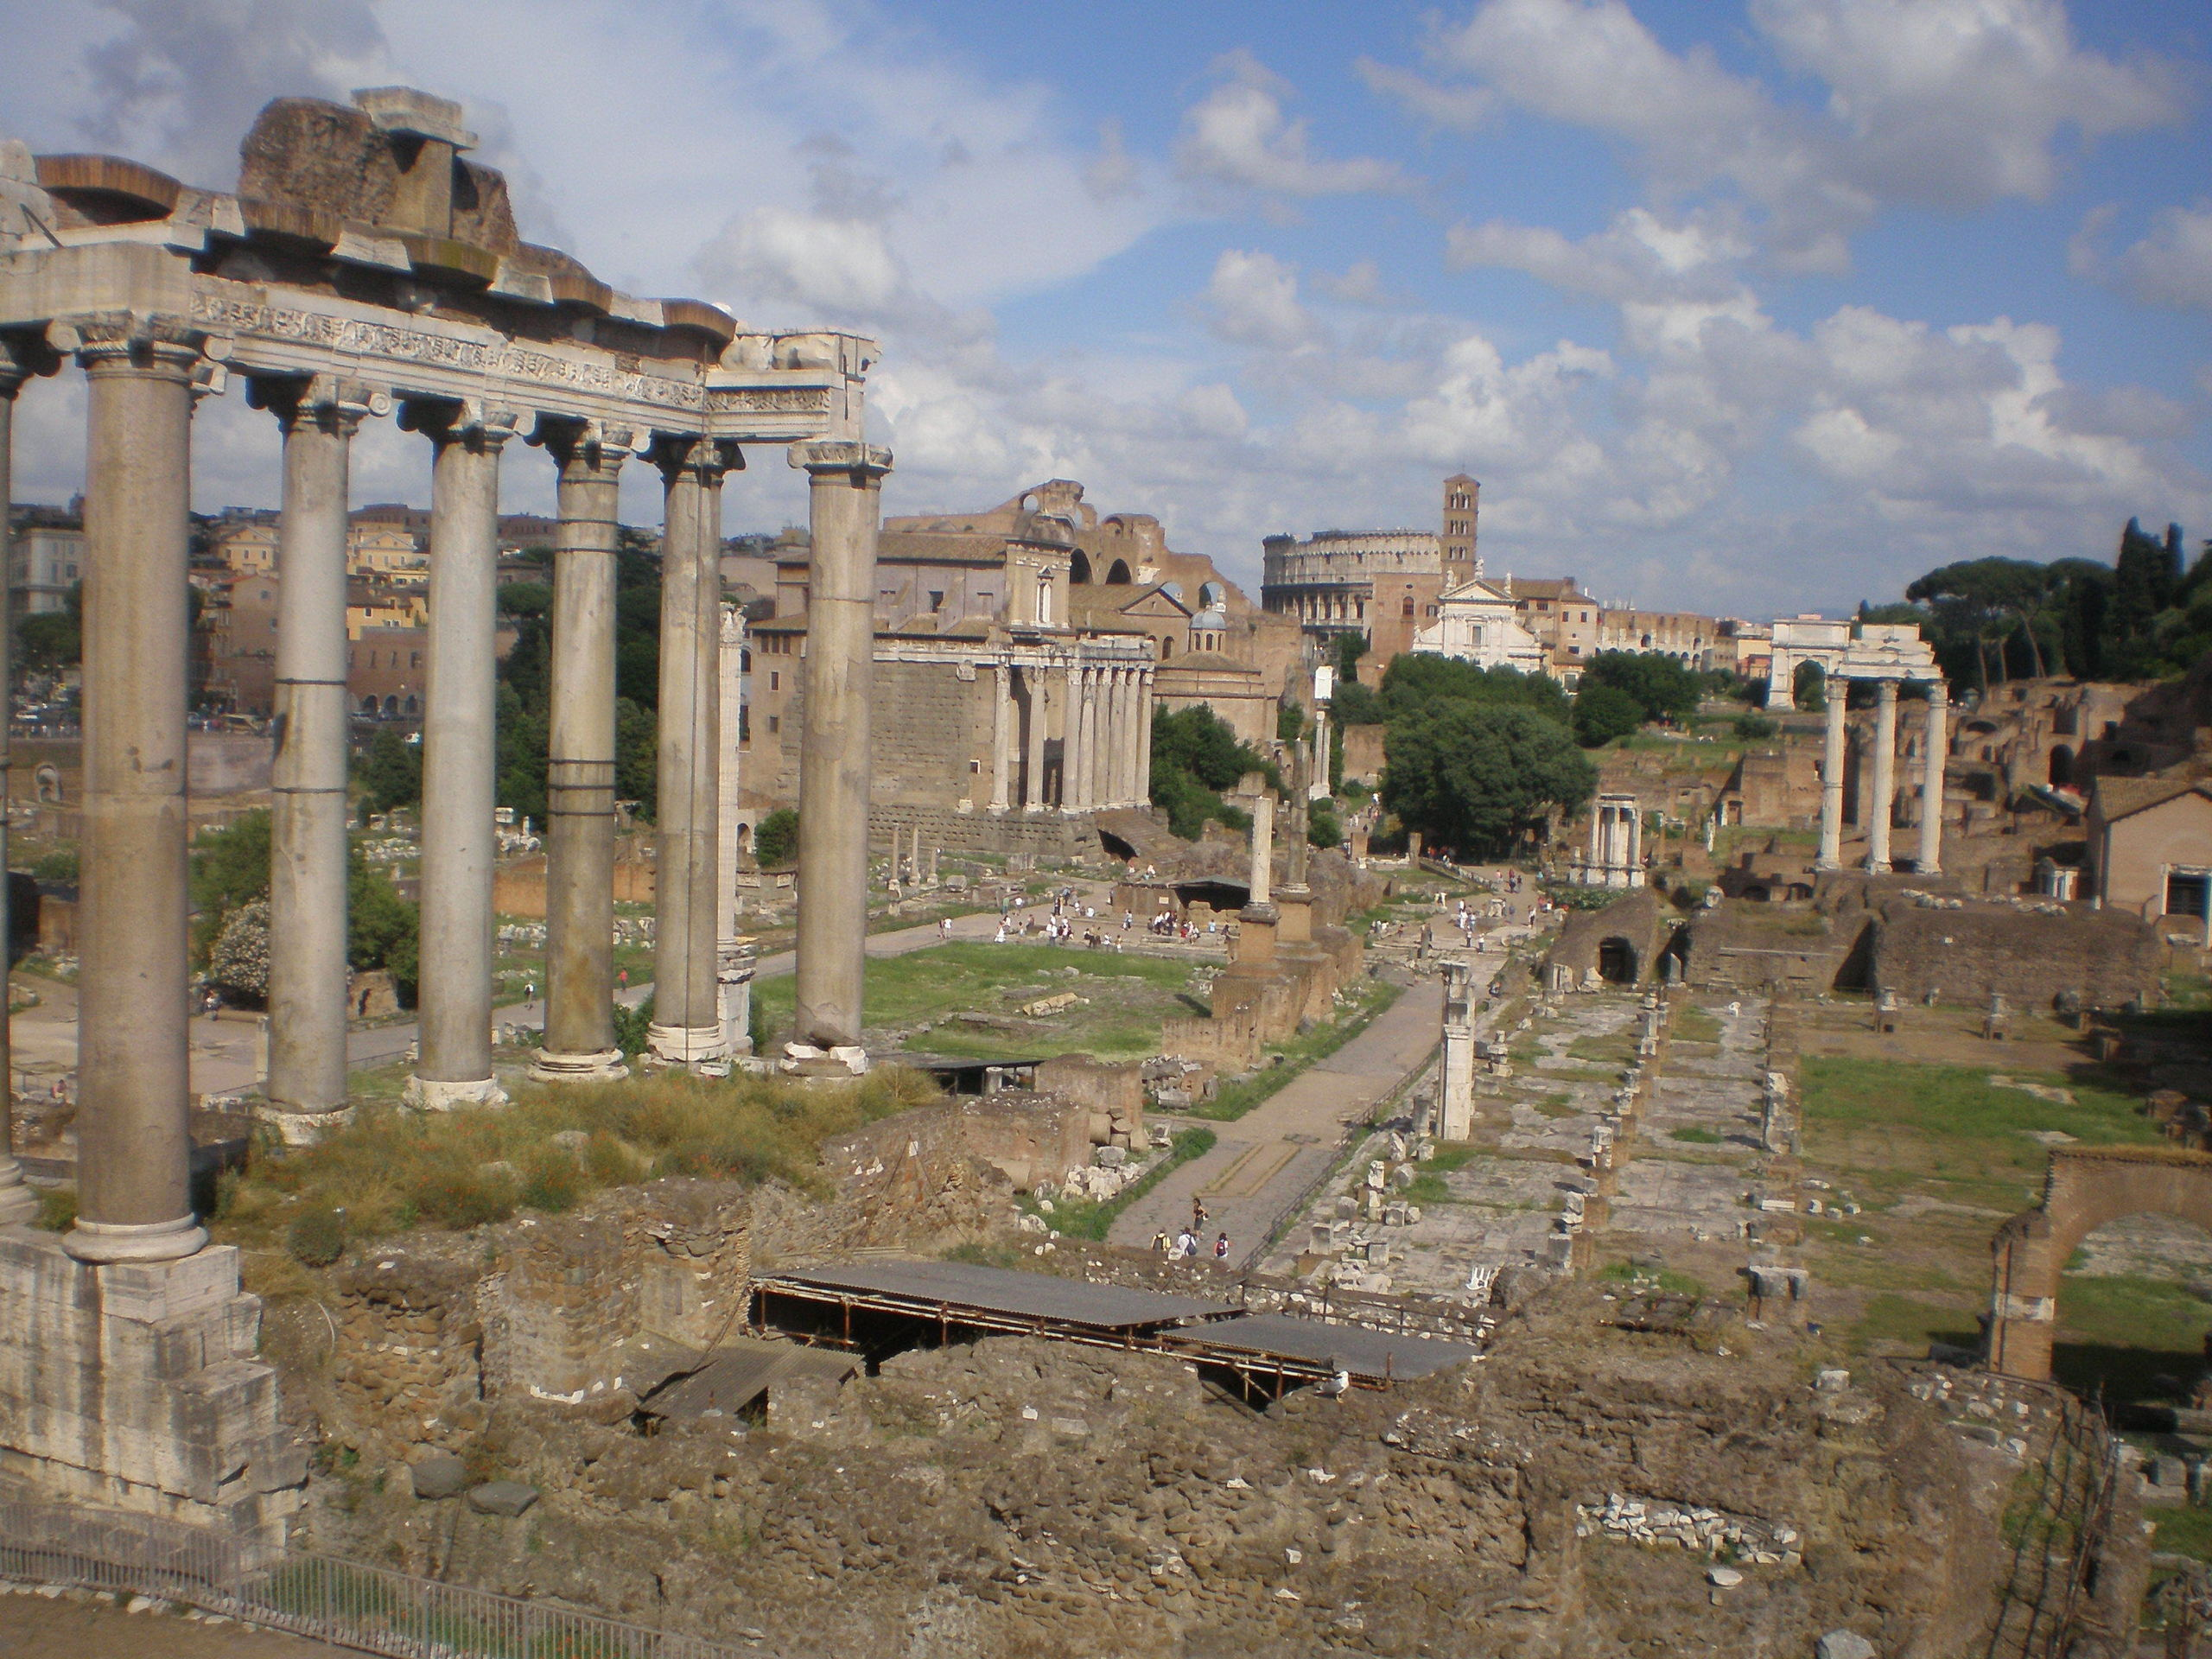 this is about the ancient roman The ancient romans had some strange ideas about pregnancy, menstruation,  death, and even handedness.